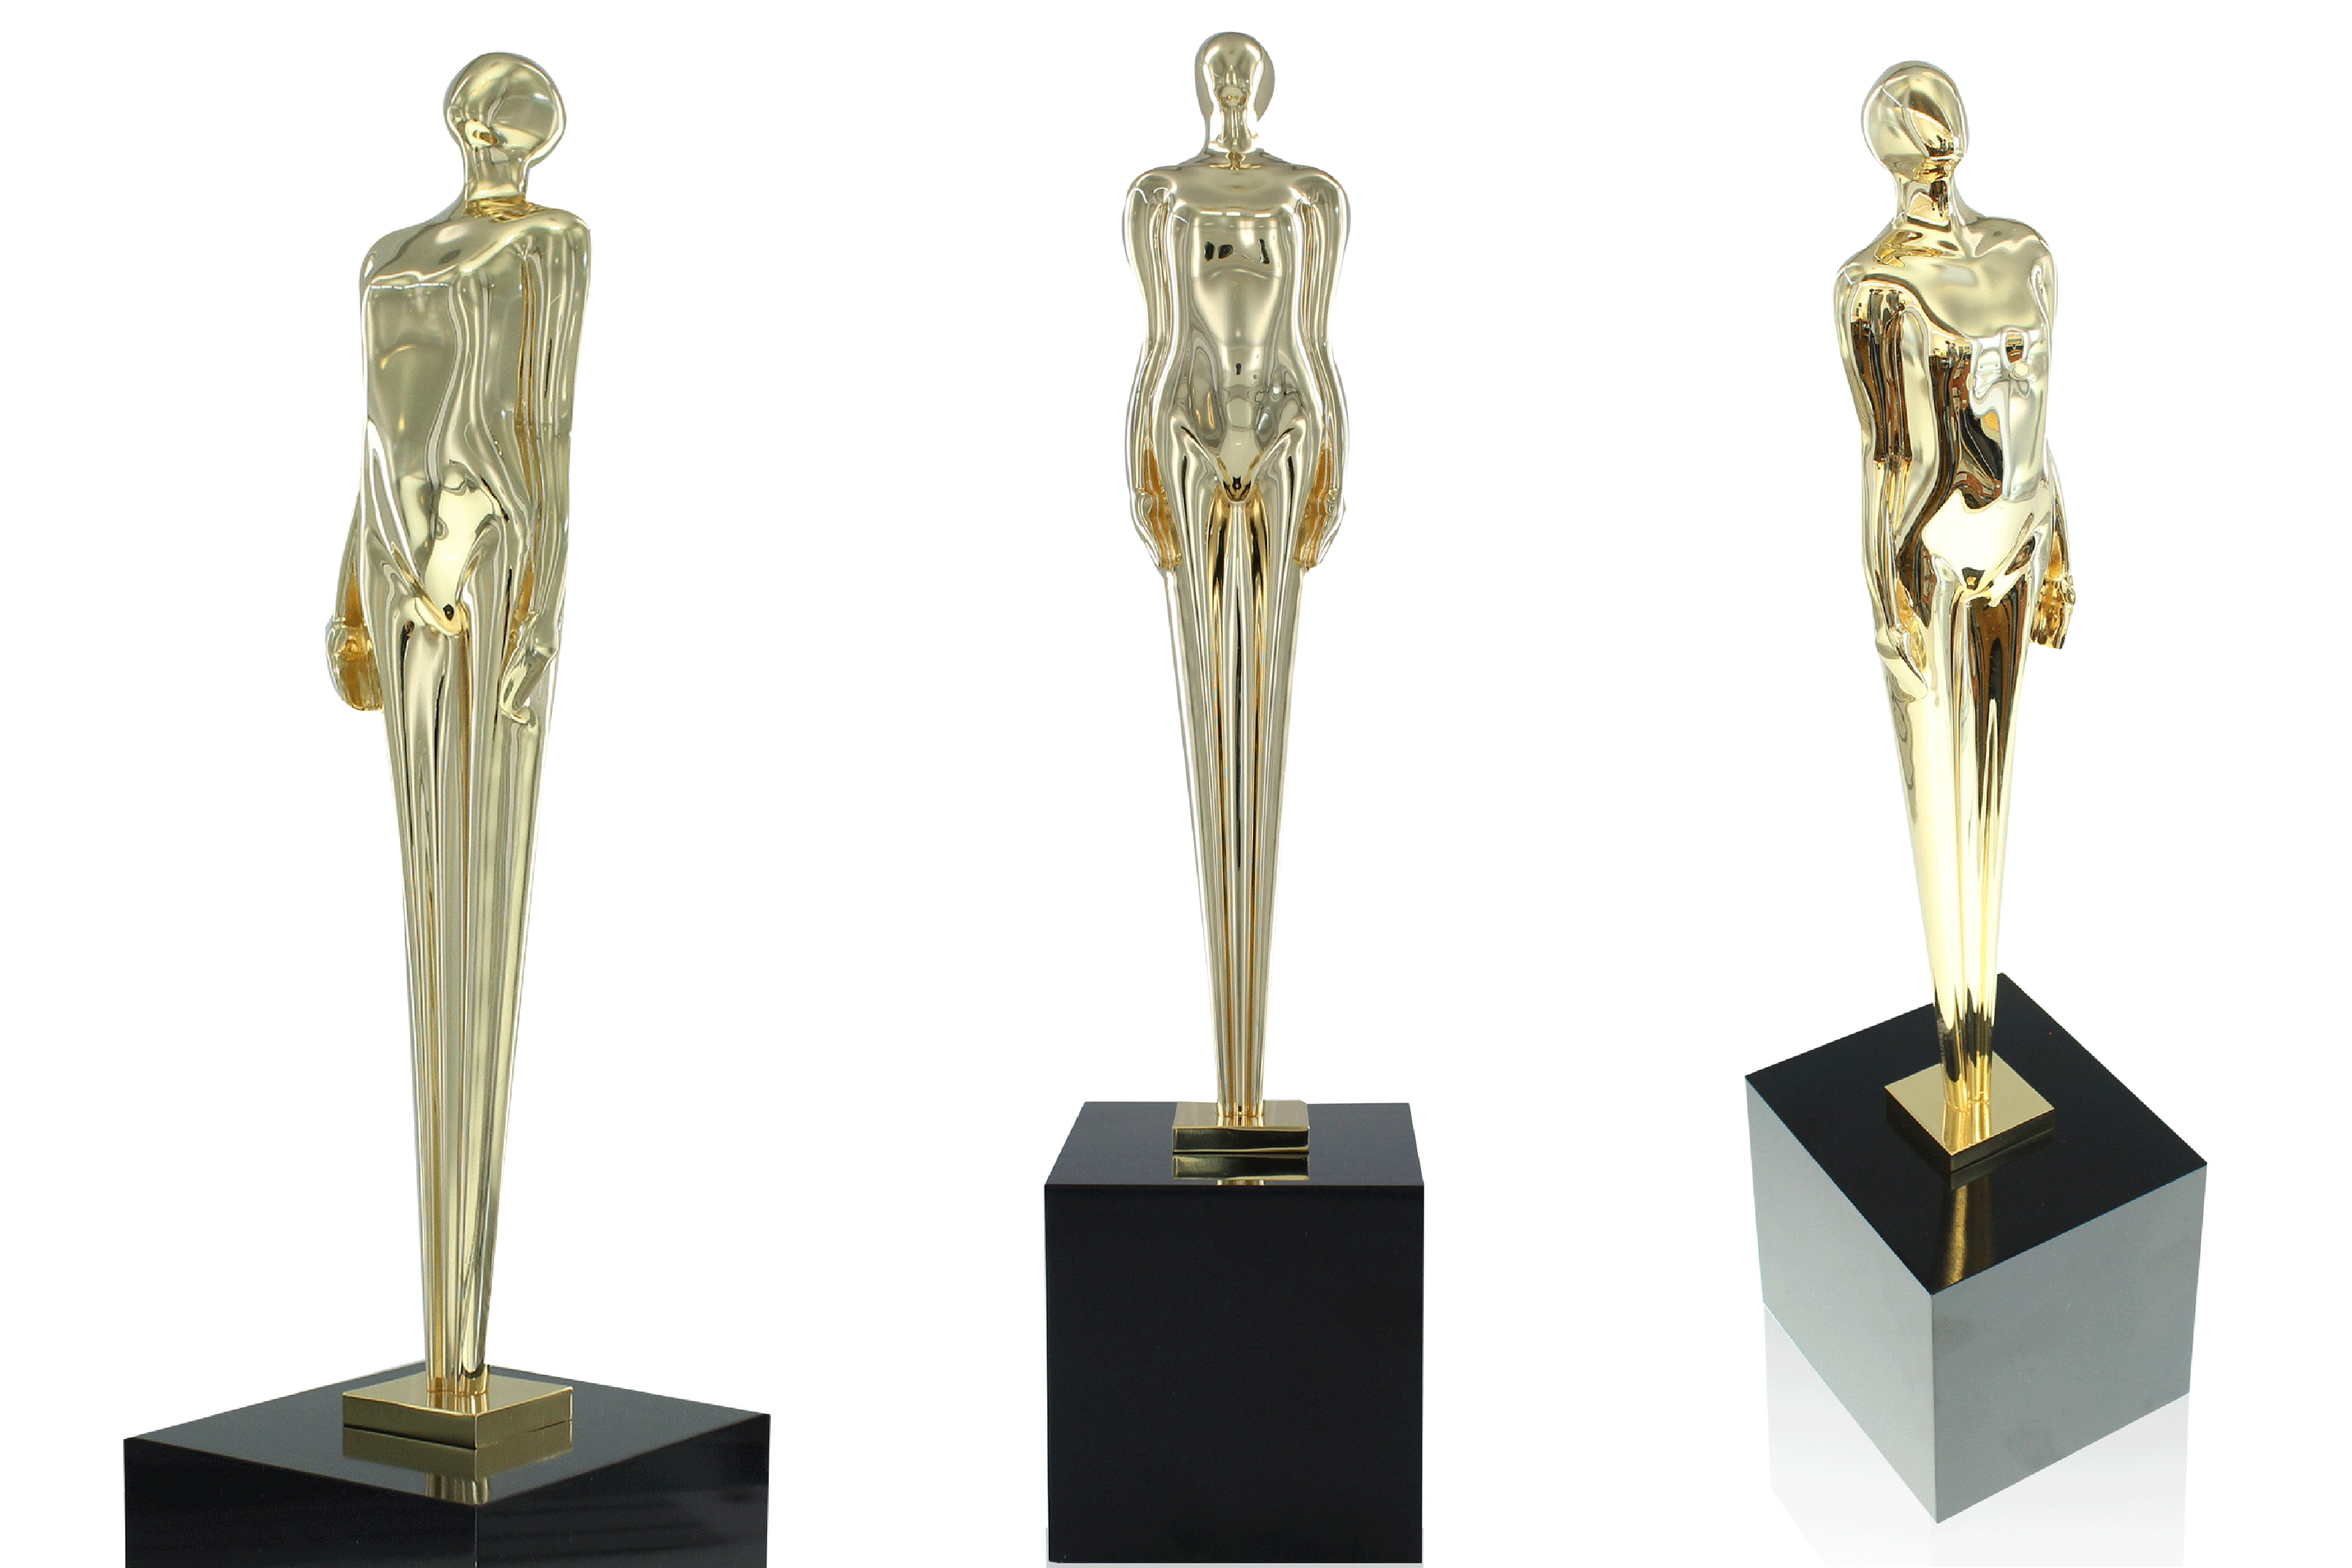 3 views of the limited edition Figure 1 trophy